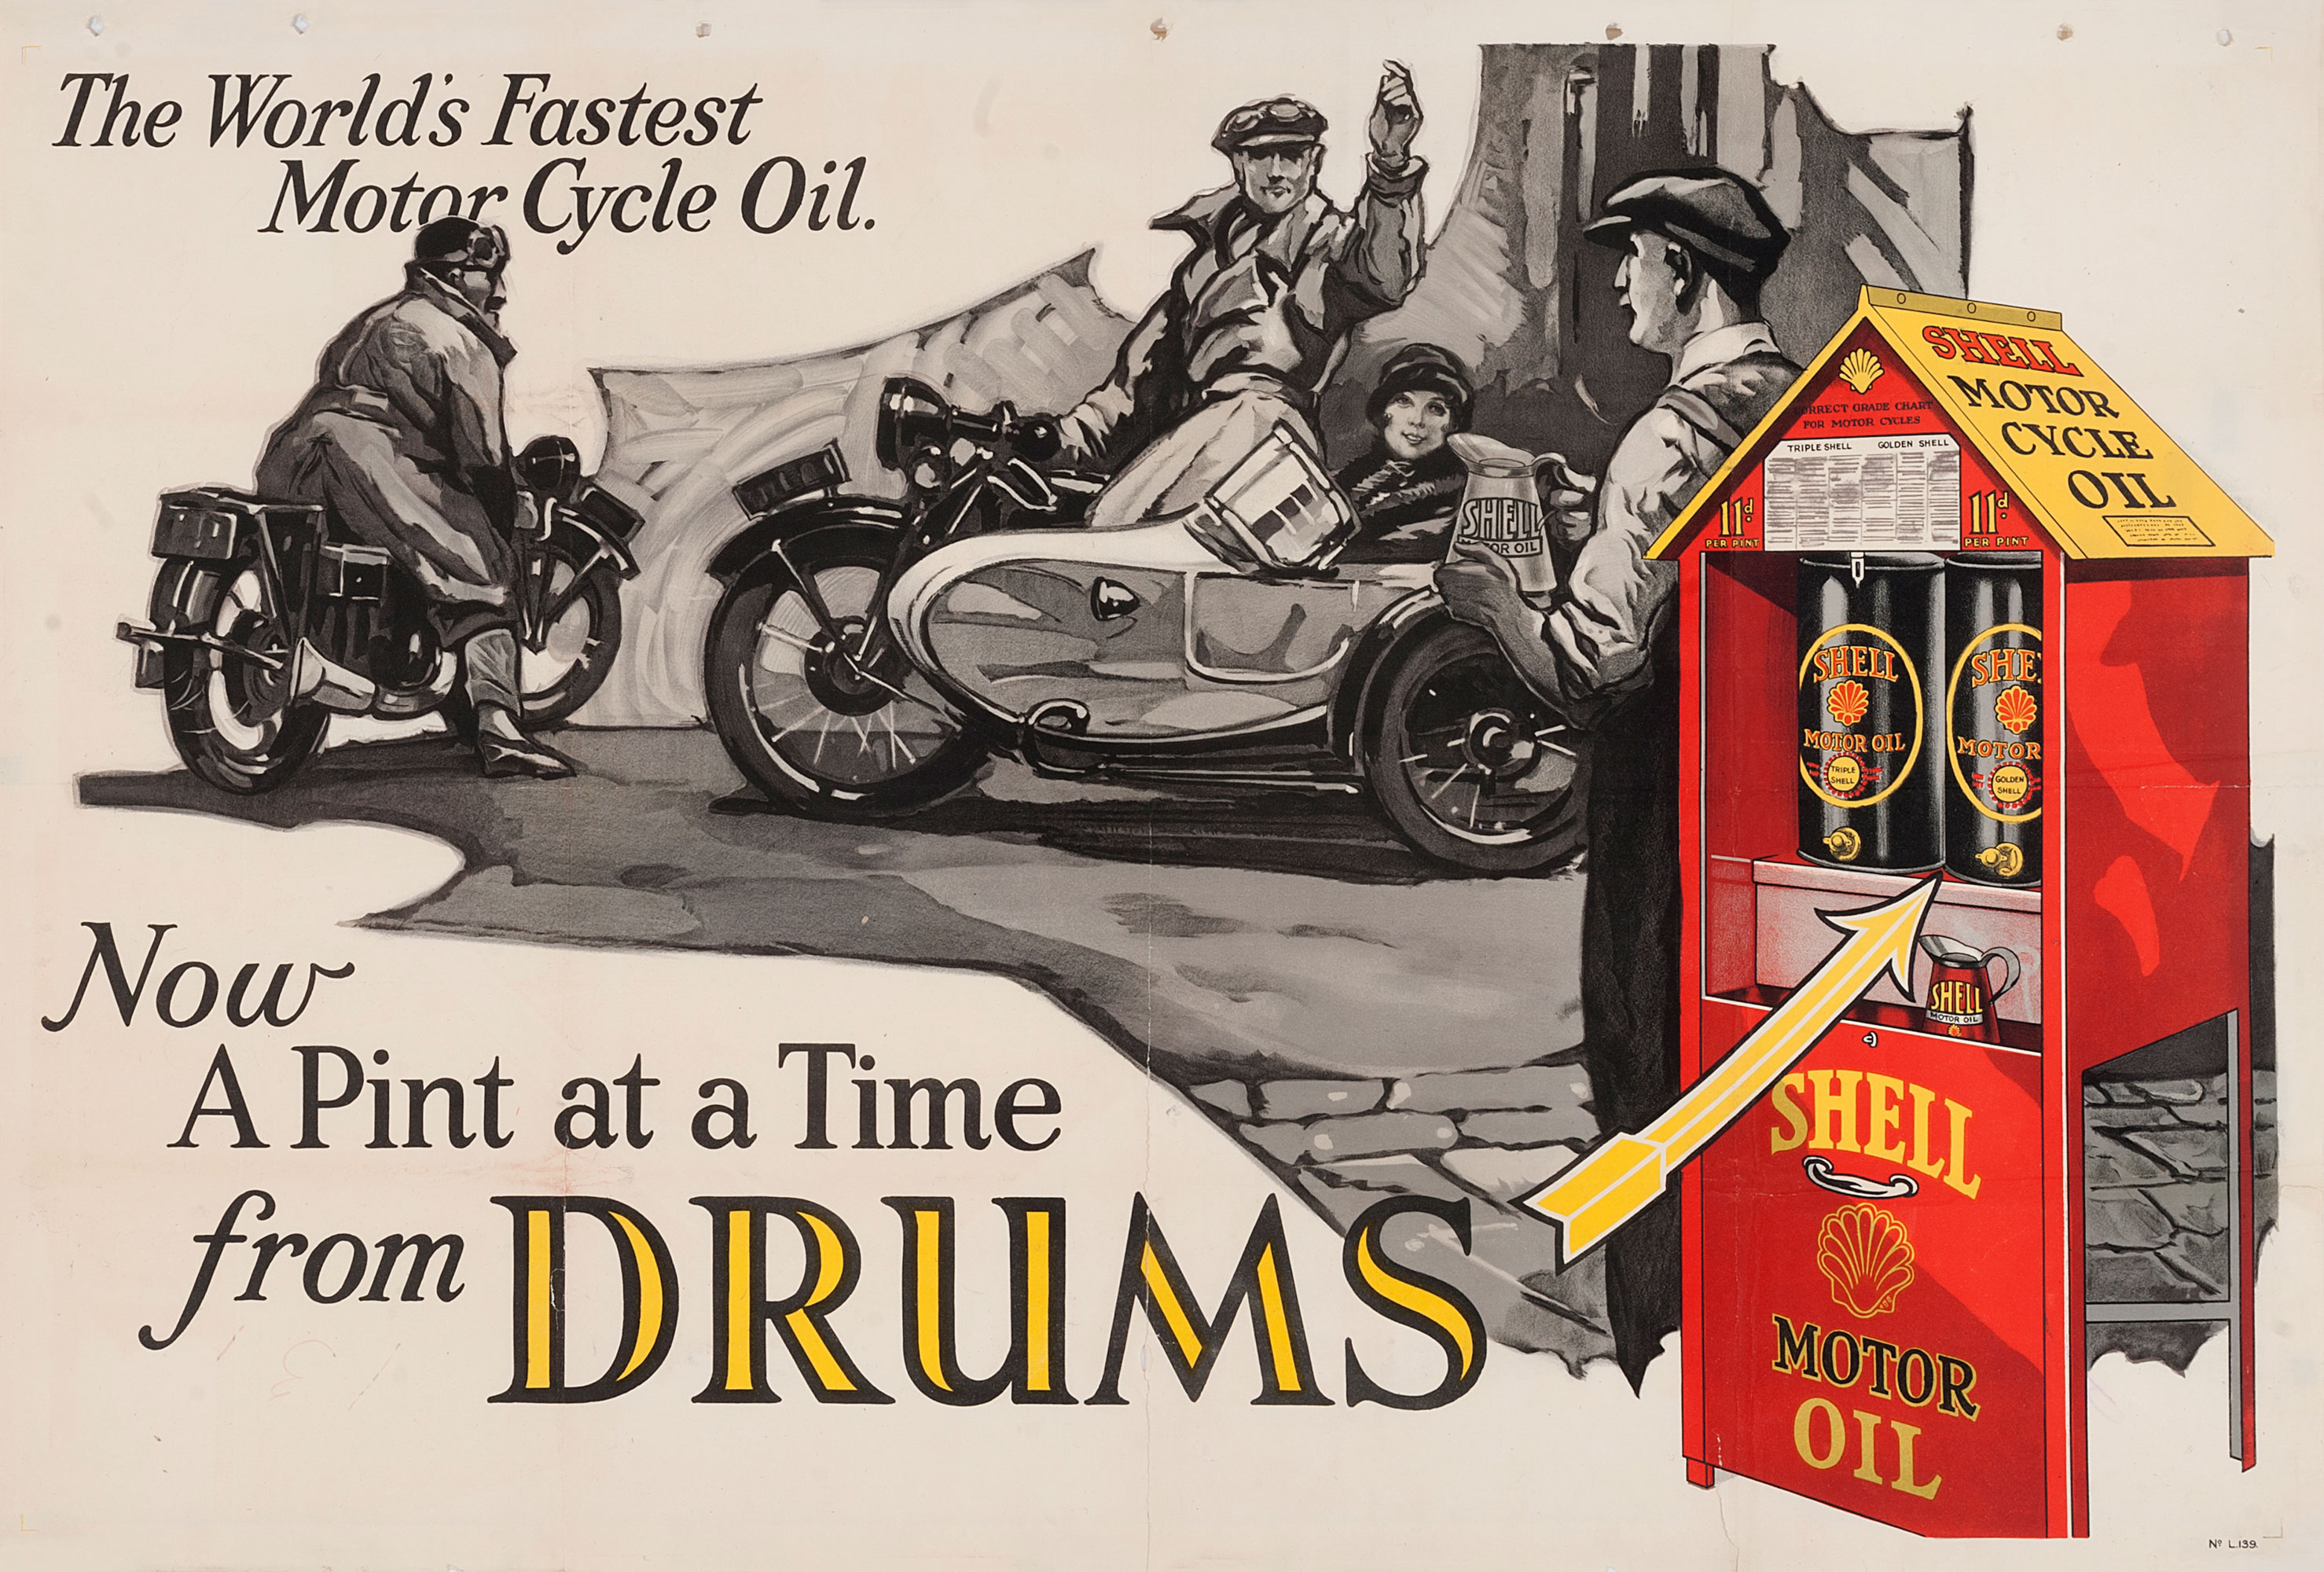 """Shell poster number 139, World's fastest motor oil (1926), Shell Studio. Painting shows Shell oil drums in foreground, motorcyclists and a man holding a can of Shell oil are in the background. Caption reads; """"The World's Fastest Motor Cycle Oil, Now a pint at a time from Drums""""."""